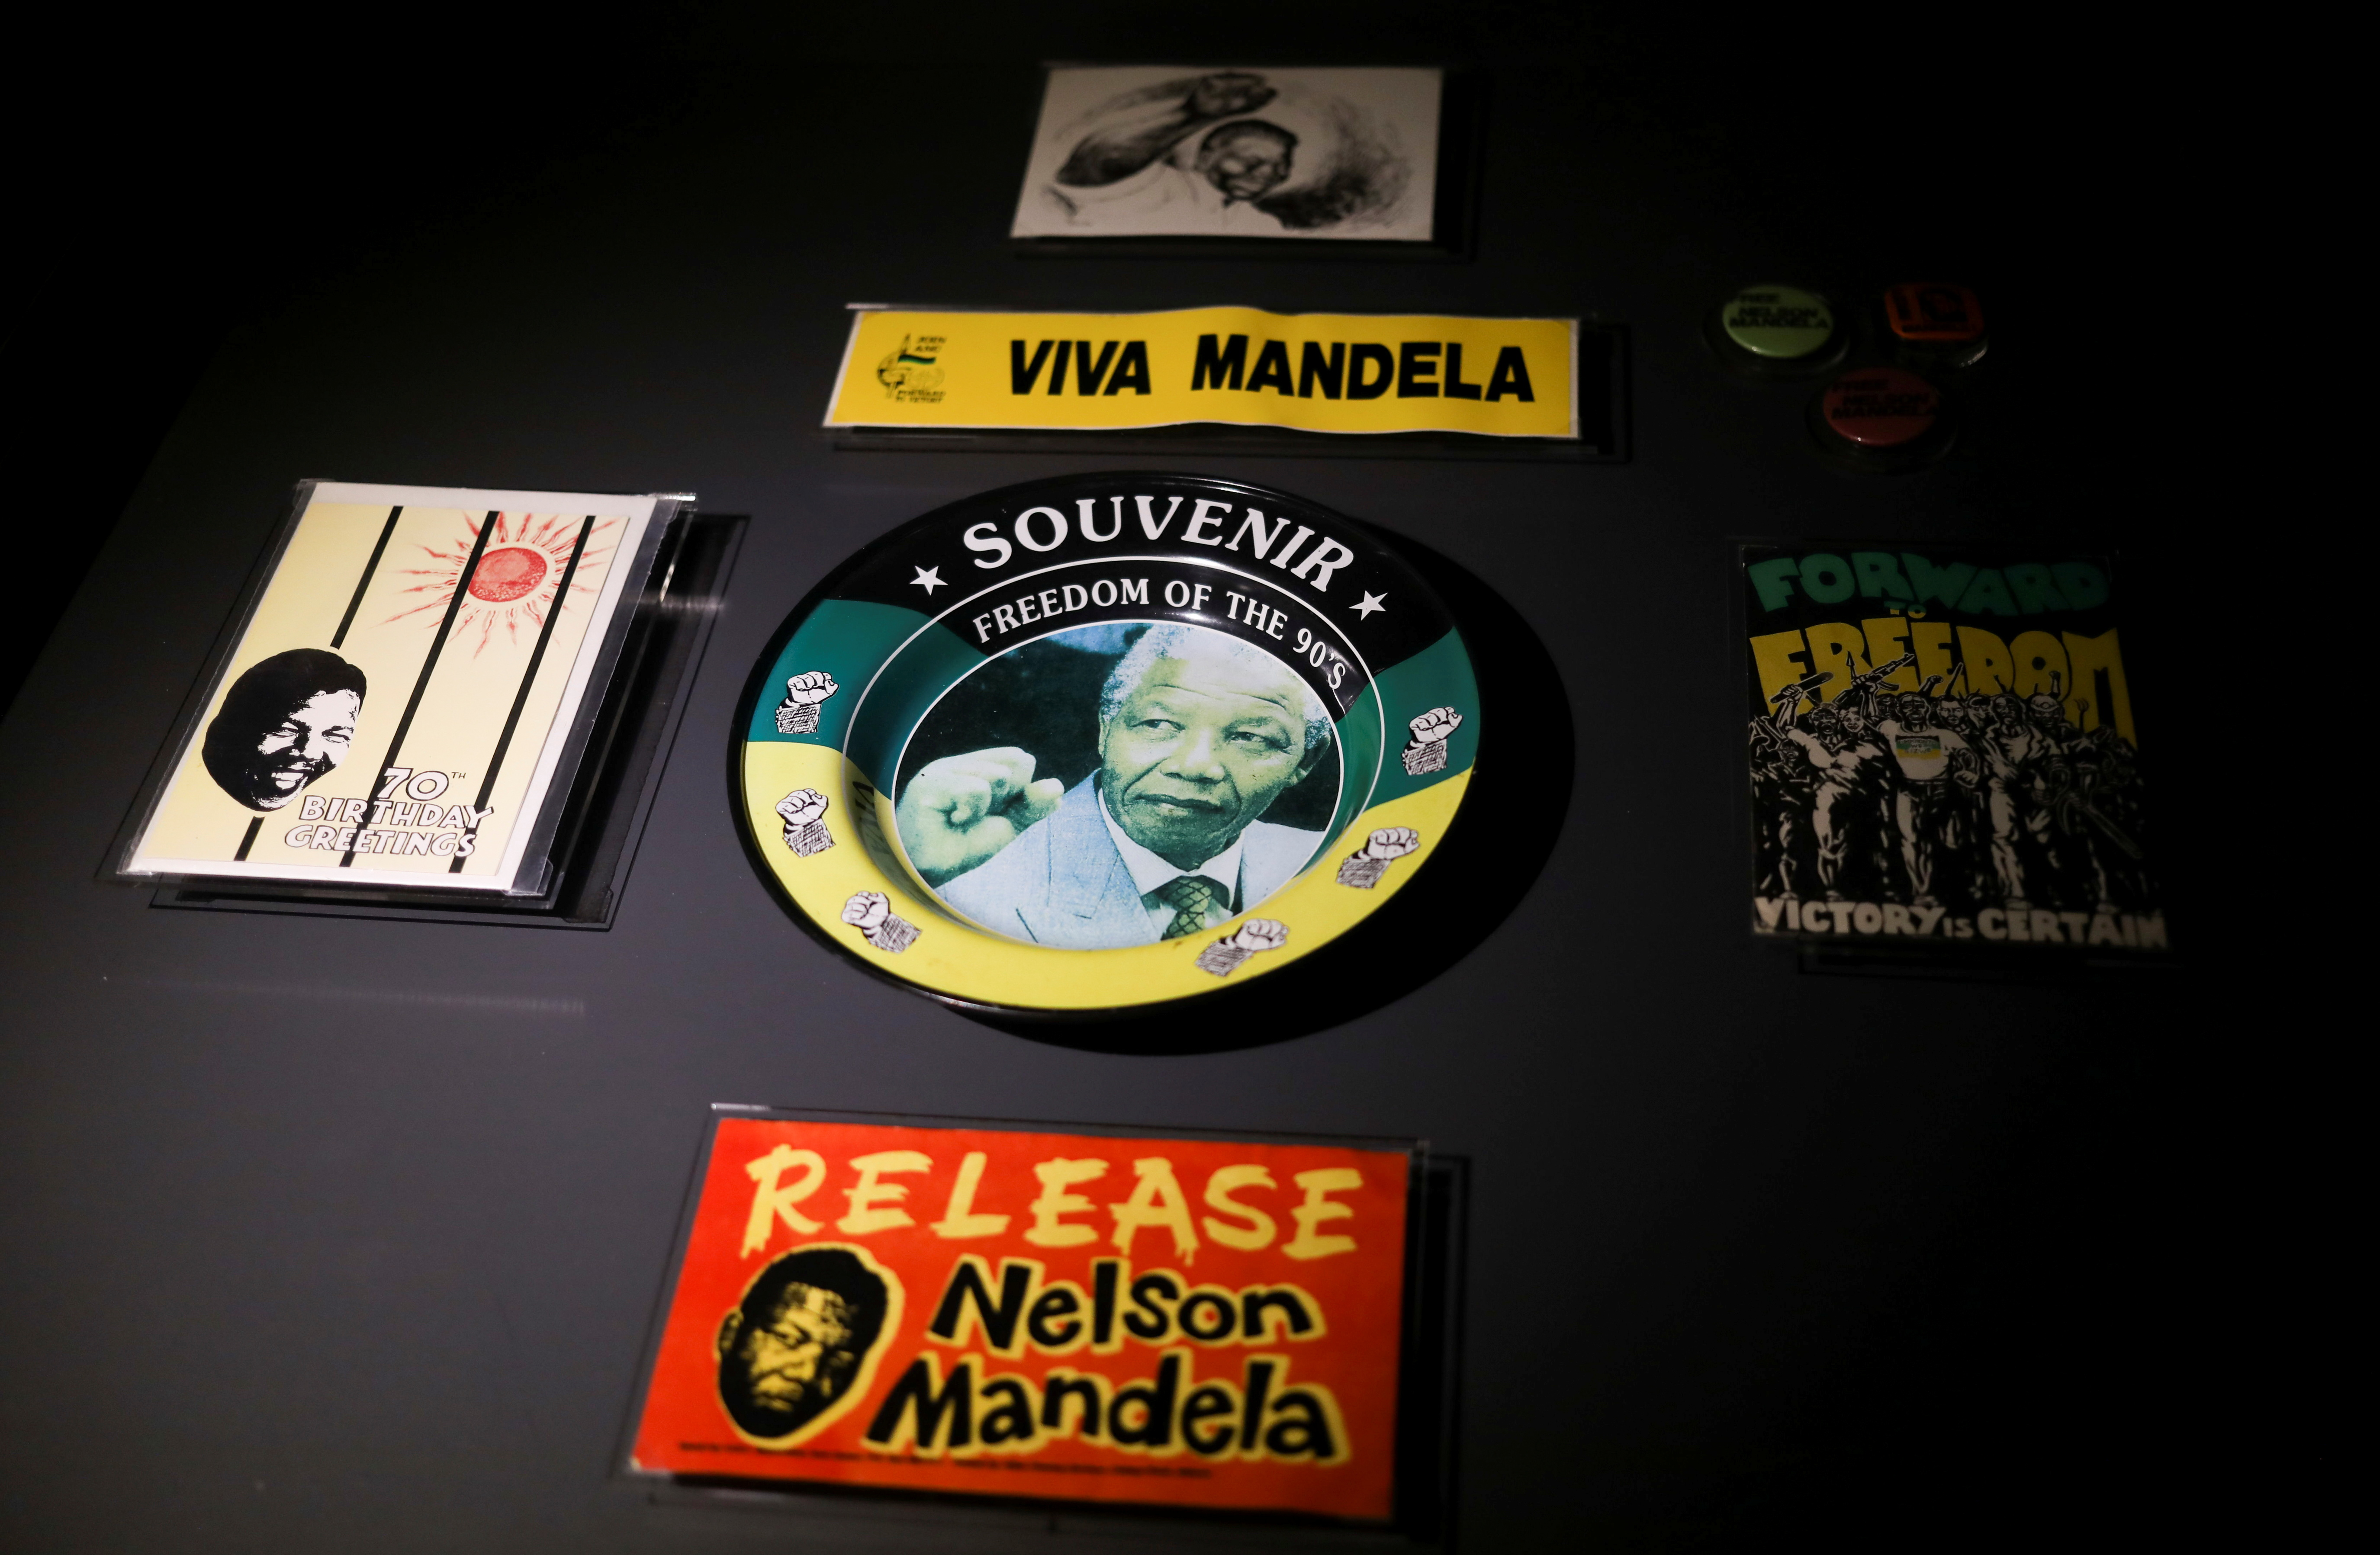 Memorabilia with the face of former South African President Nelson Mandela, are displayed at the Apartheid Museum, one of dozens of heritage attractions and art galleries around the country forced to close their doors due to the coronavirus disease (COVID-19) pandemic, in Johannesburg , South Africa, April 7, 2021. REUTERS/Siphiwe Sibeko